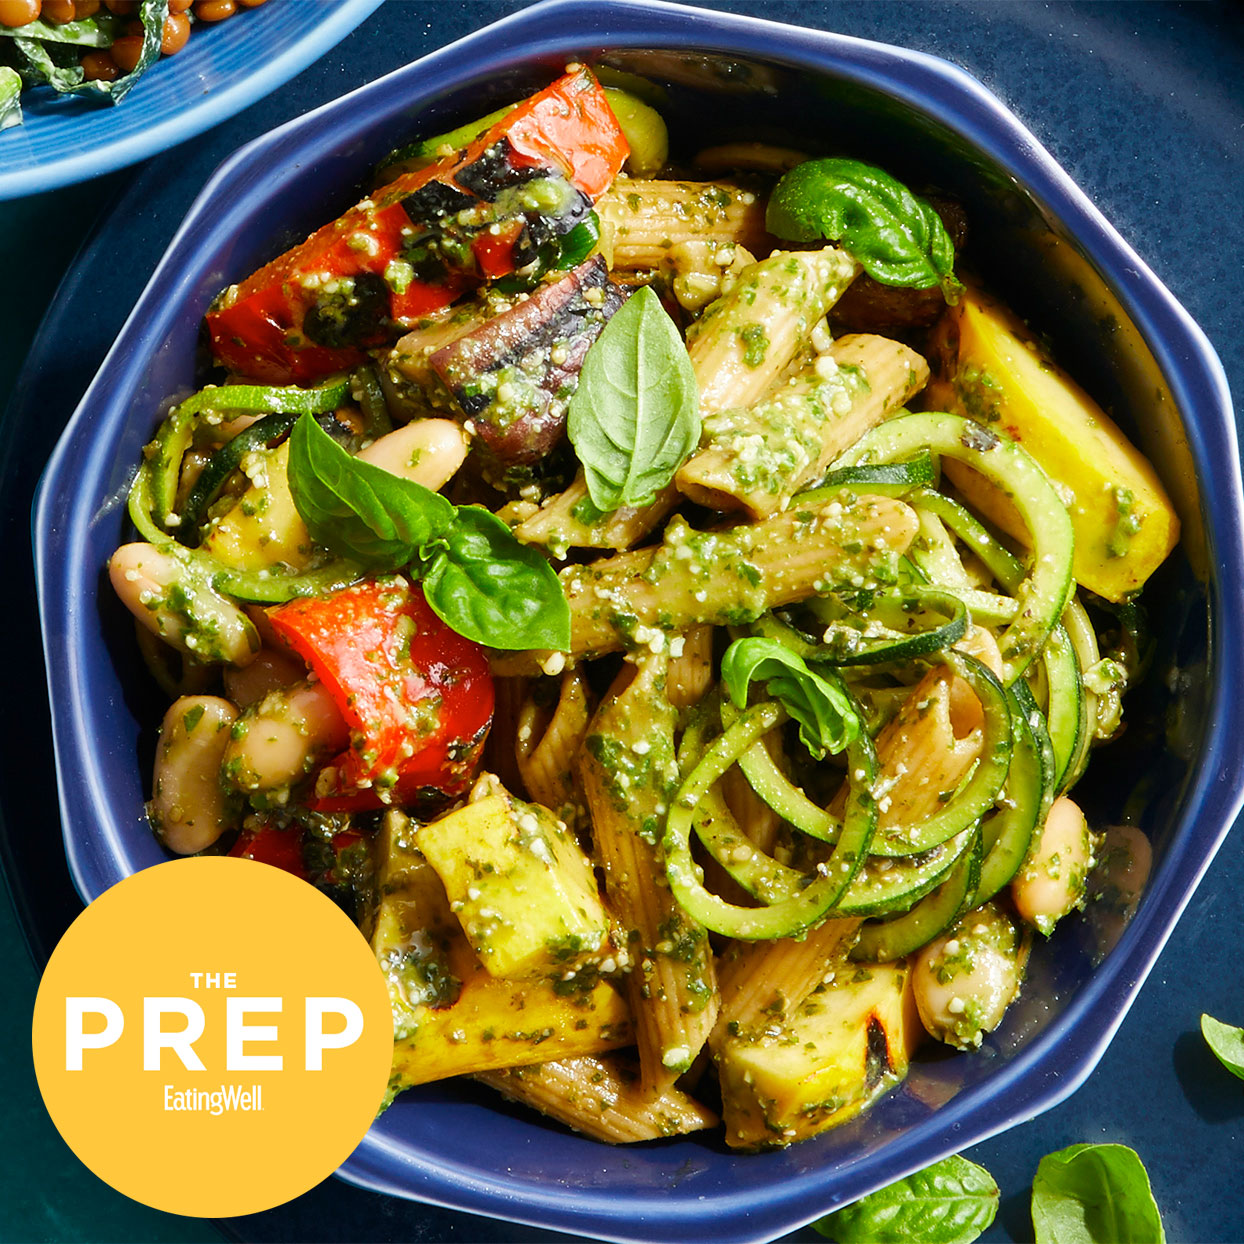 ThePrep: Garden-Fresh Dinners to Put You in a Summery State of Mind